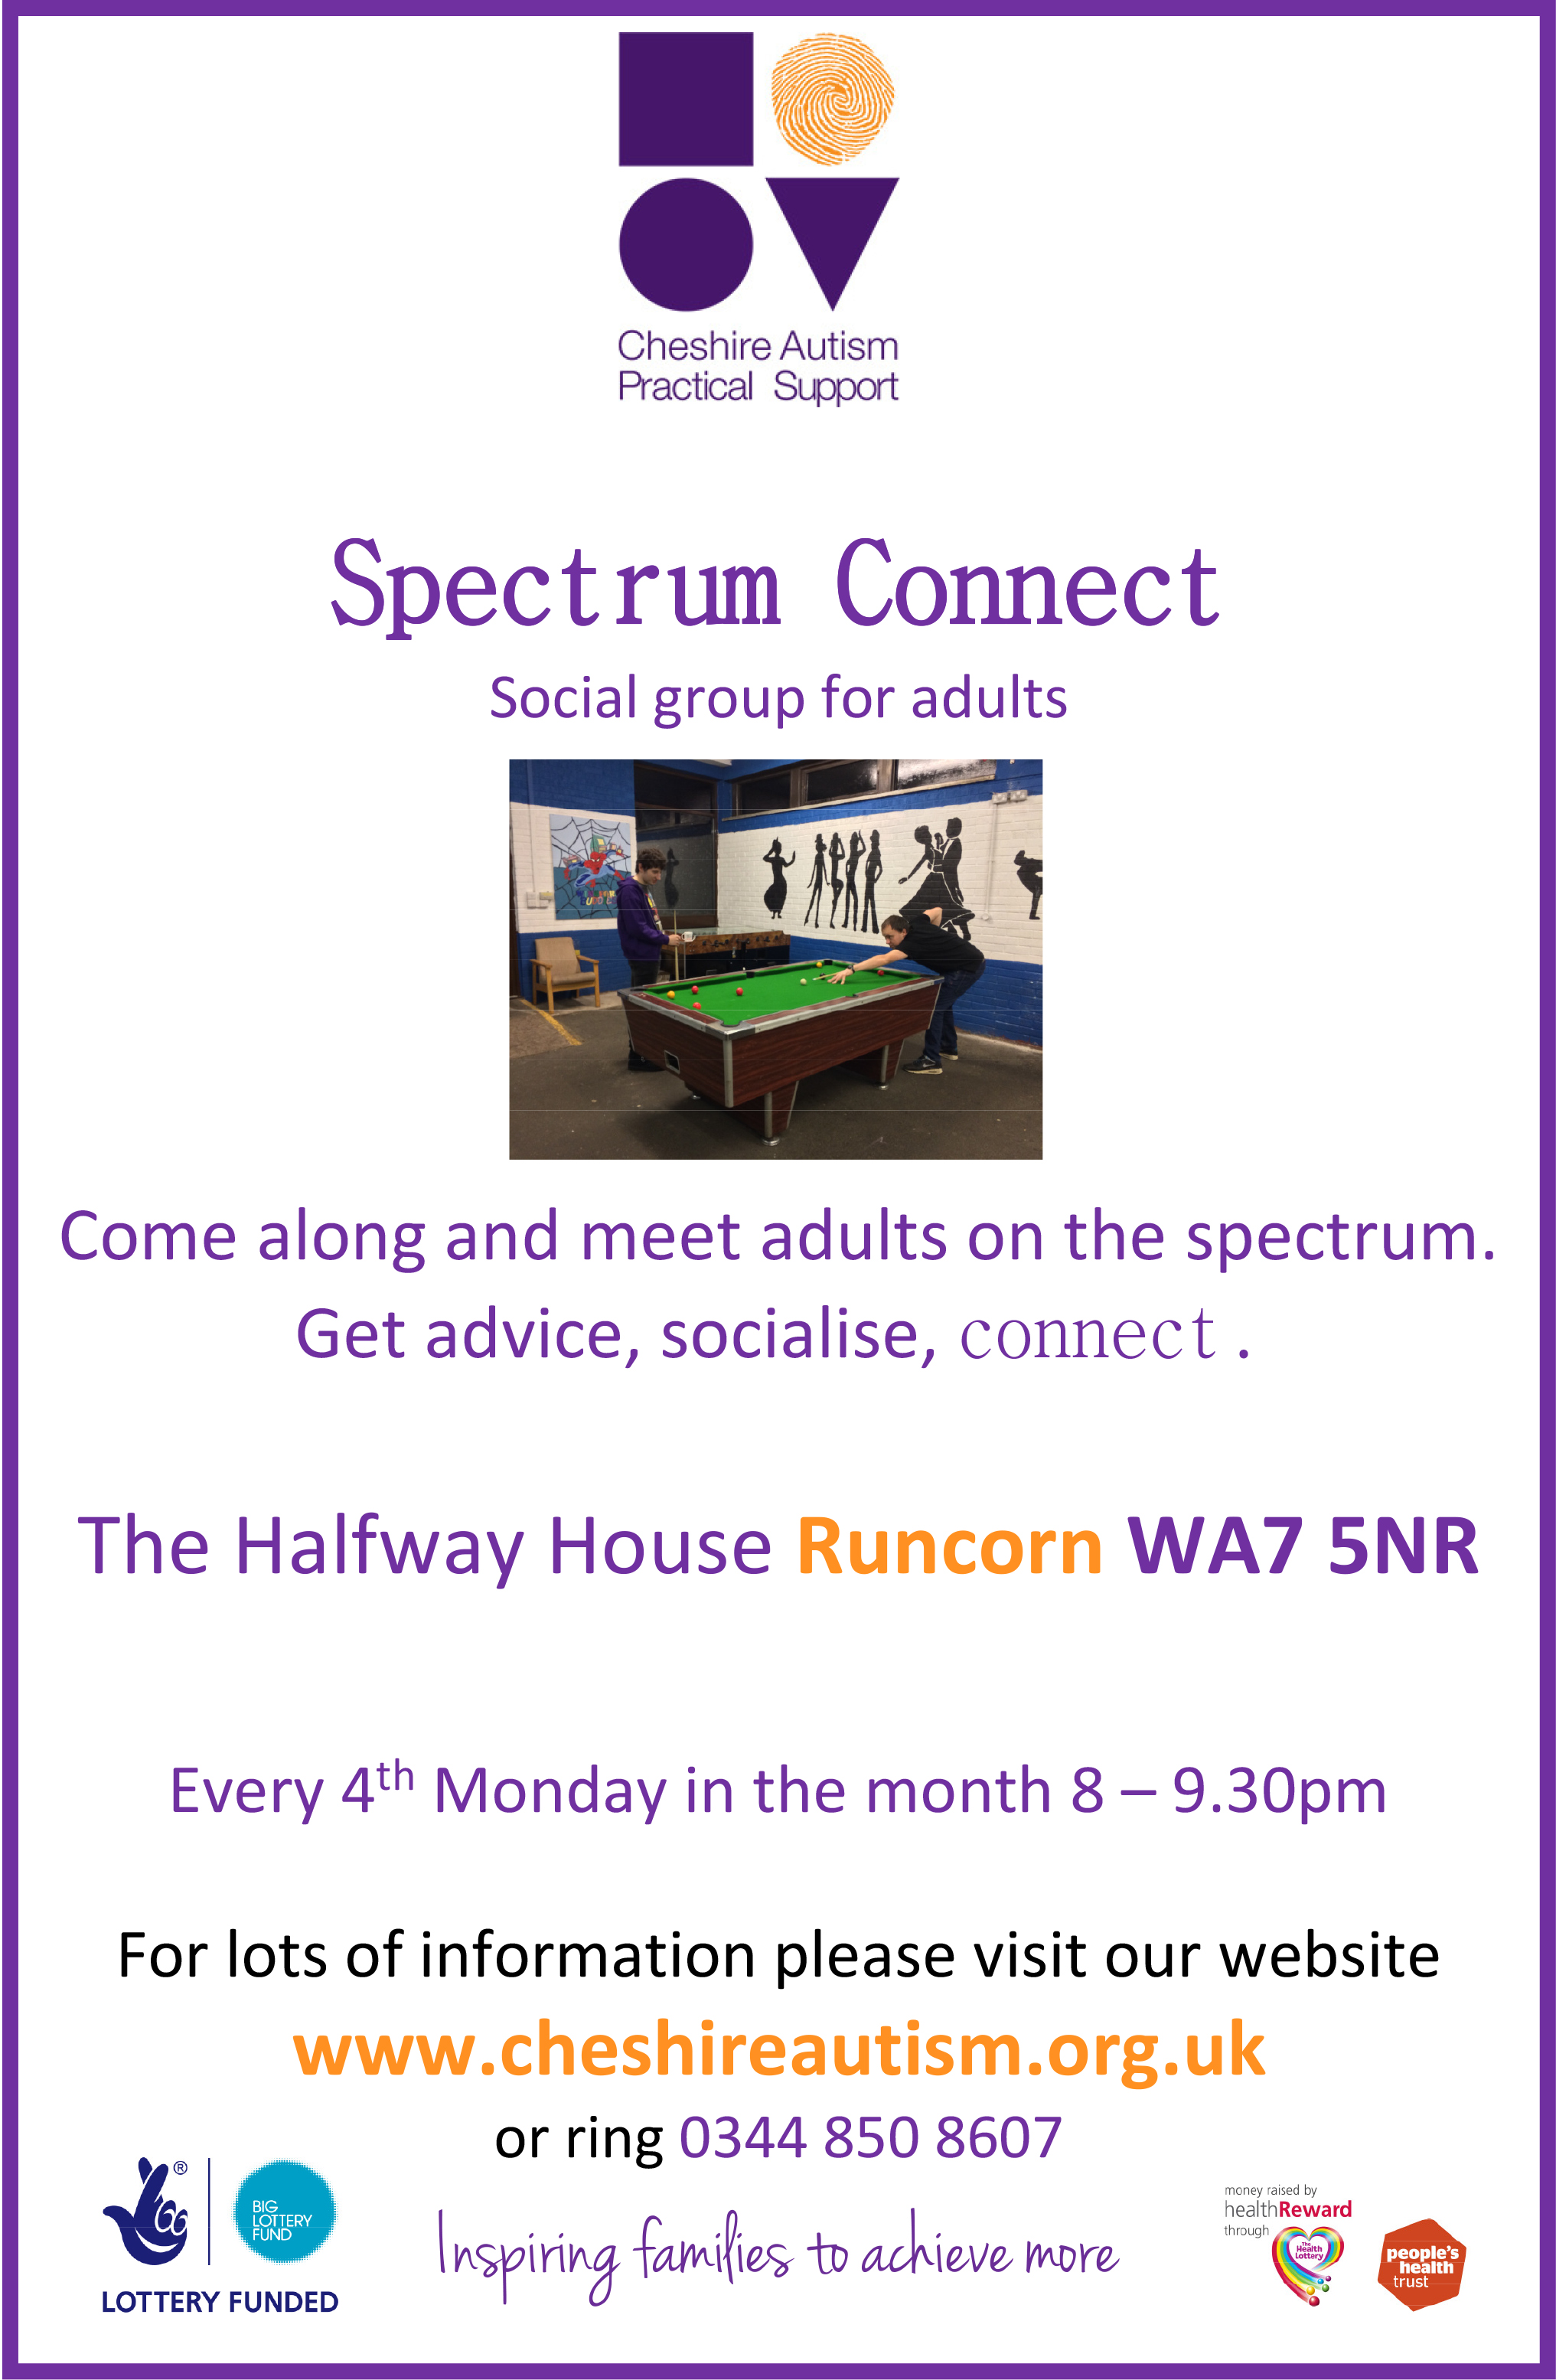 Microsoft Word - Spectrum Connect Runcorn A4